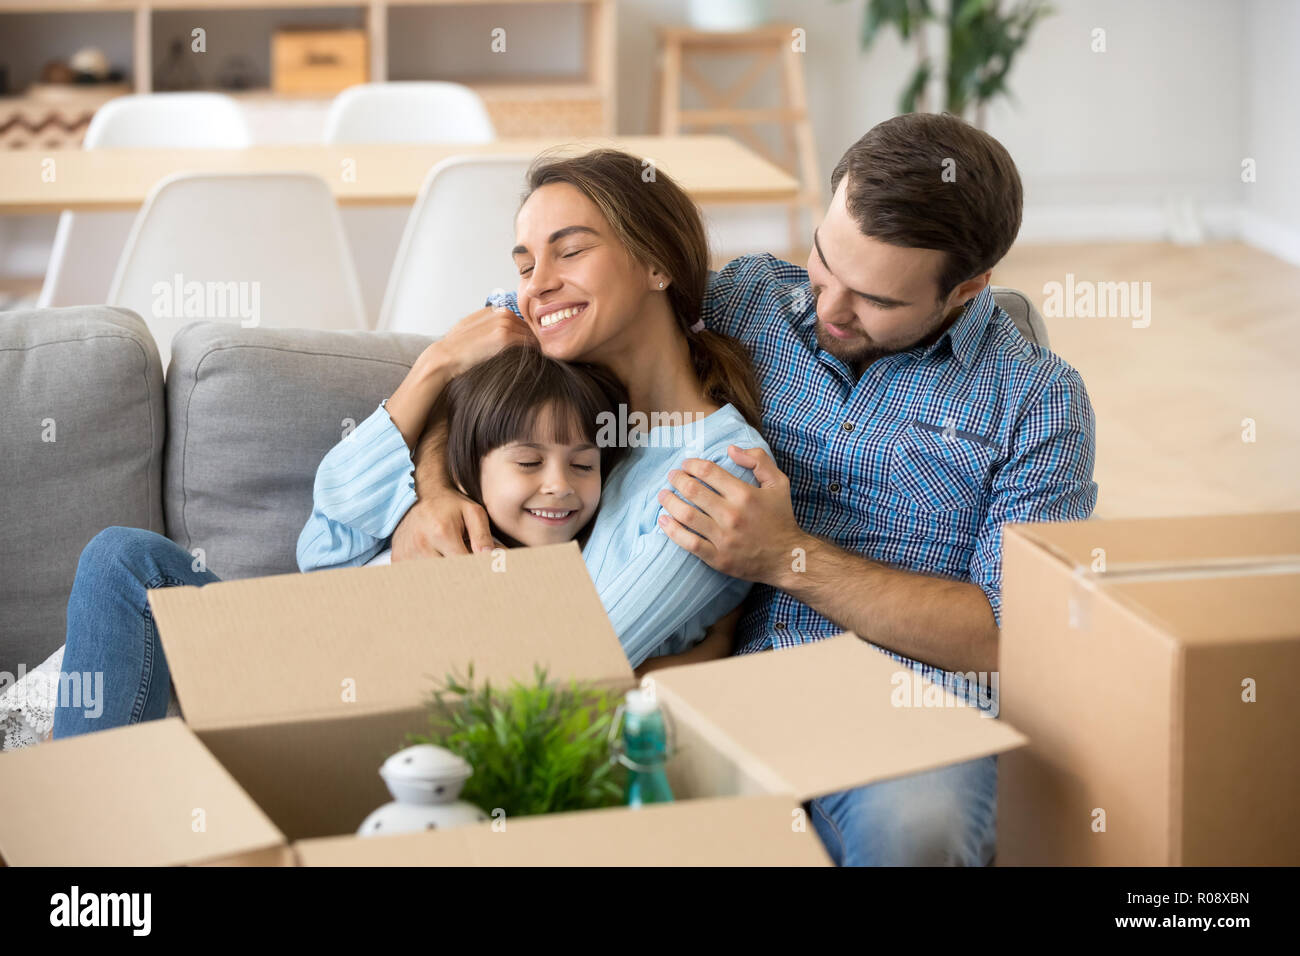 Happy family spending time at new wealthy modern home - Stock Image